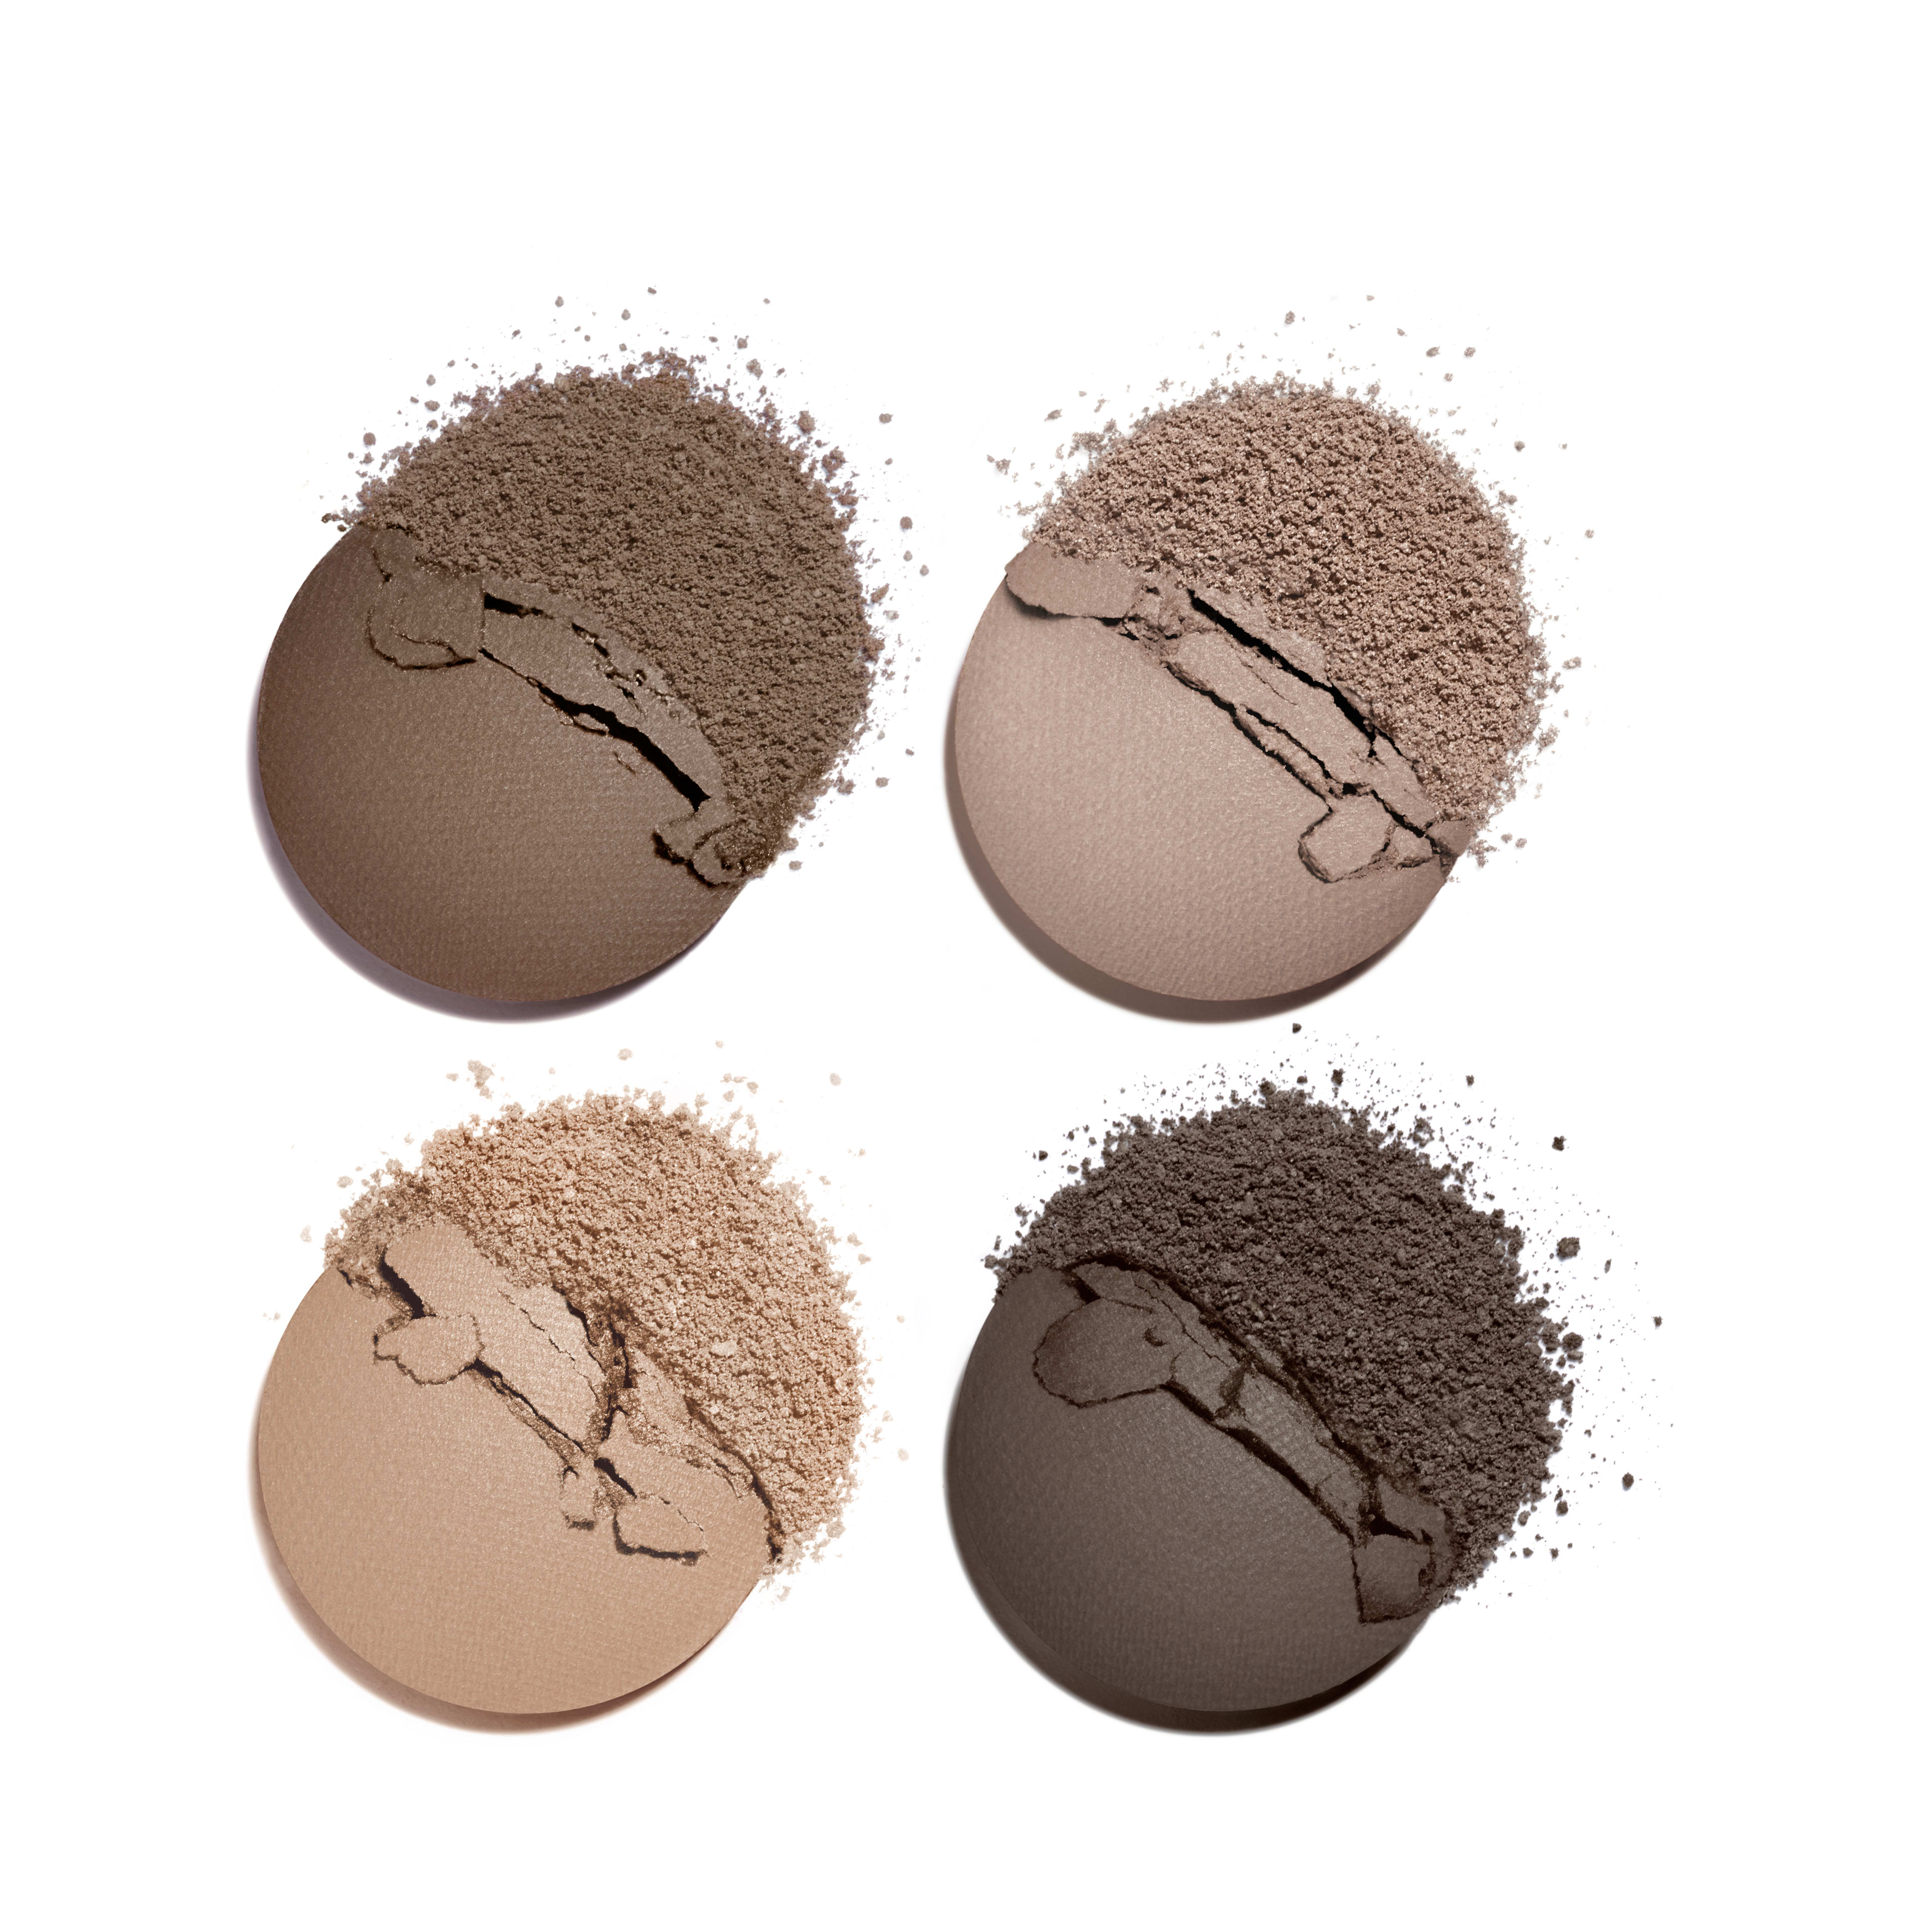 LES 4 OMBRES - makeup - 0.07OZ. - Basic texture view